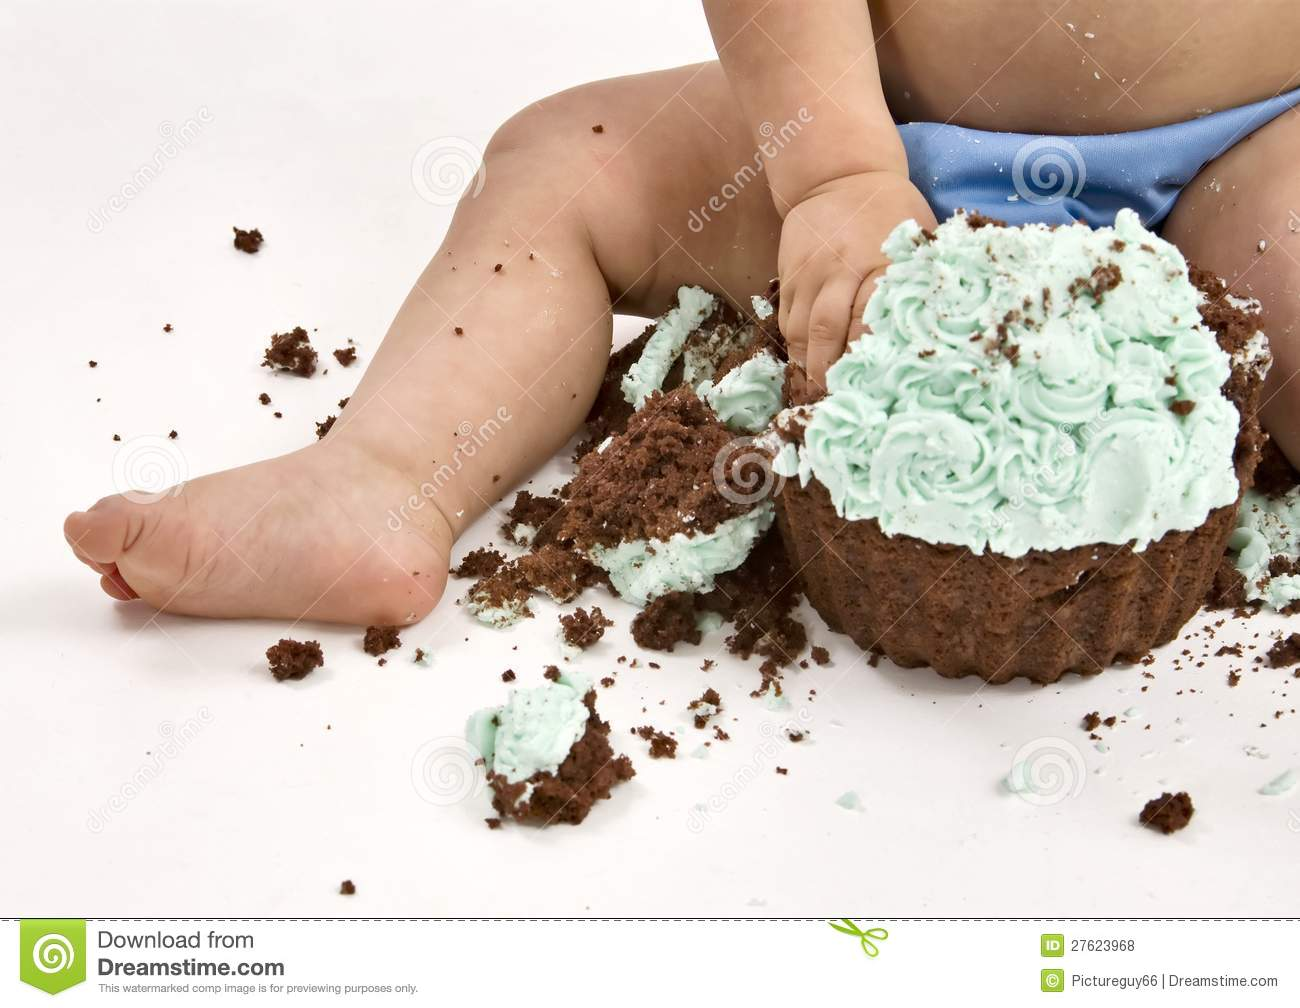 Smashed Cake Clipart : Cake Smash Photo Royalty Free Stock Photos - Image: 27623968